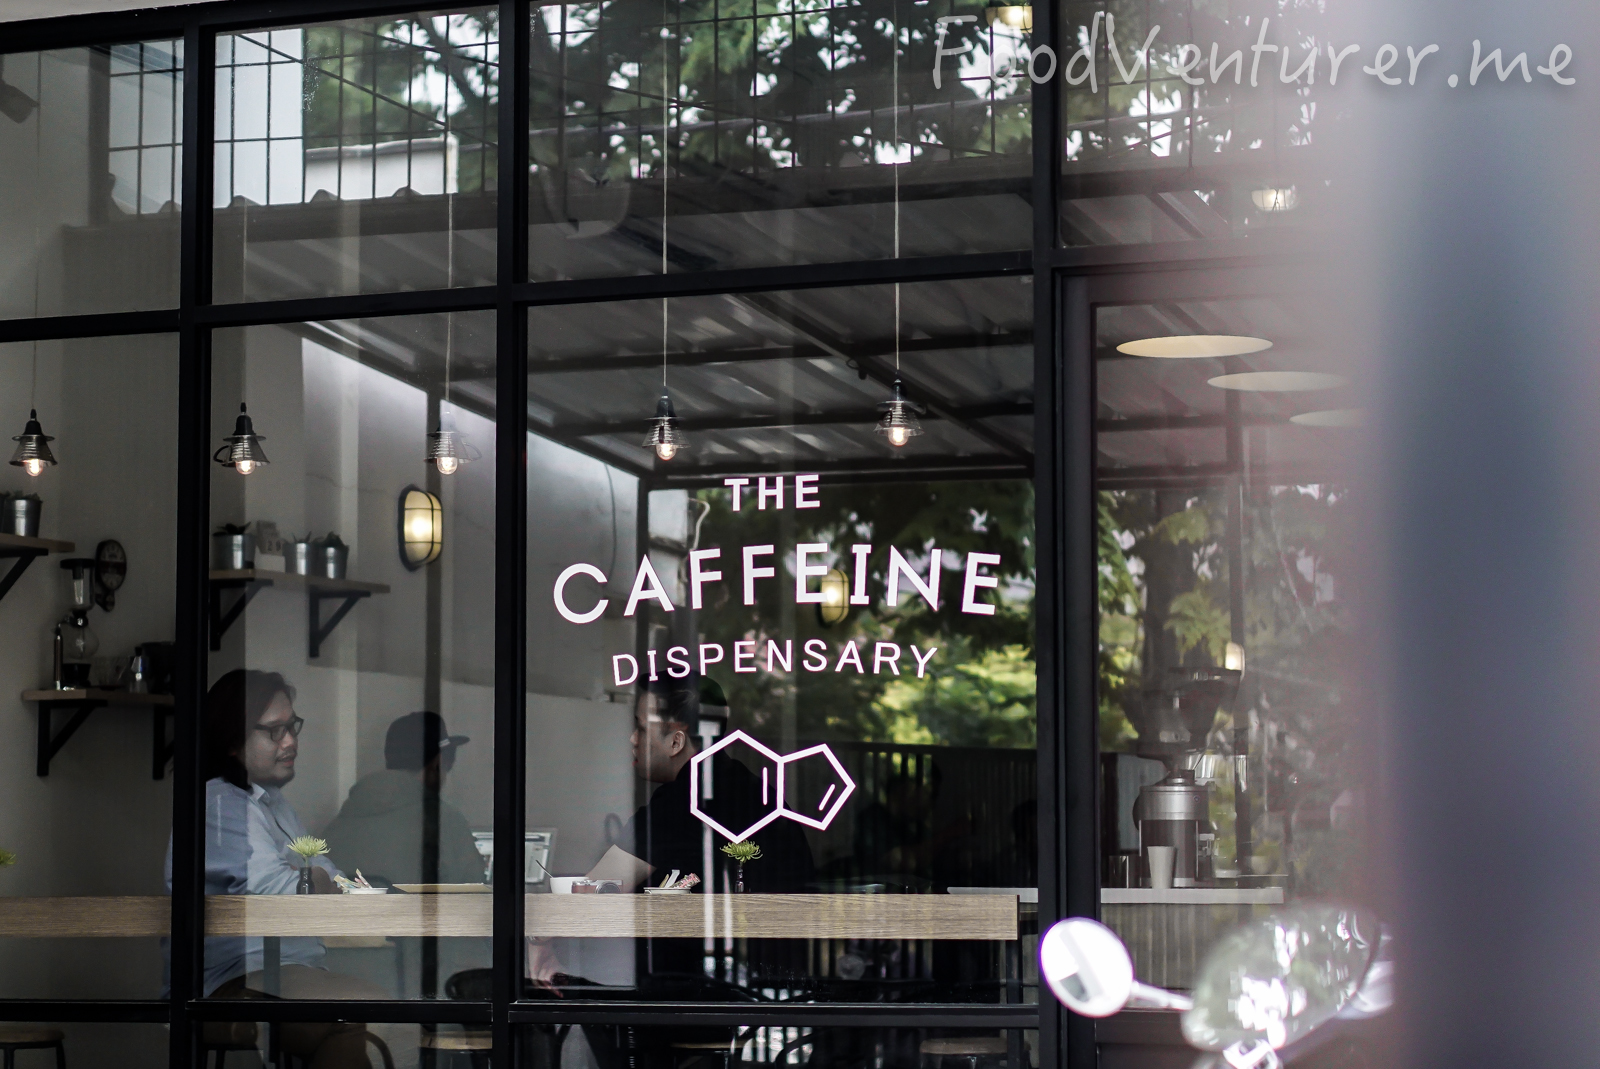 The Caffeine Dispensary - Kelapa Gading